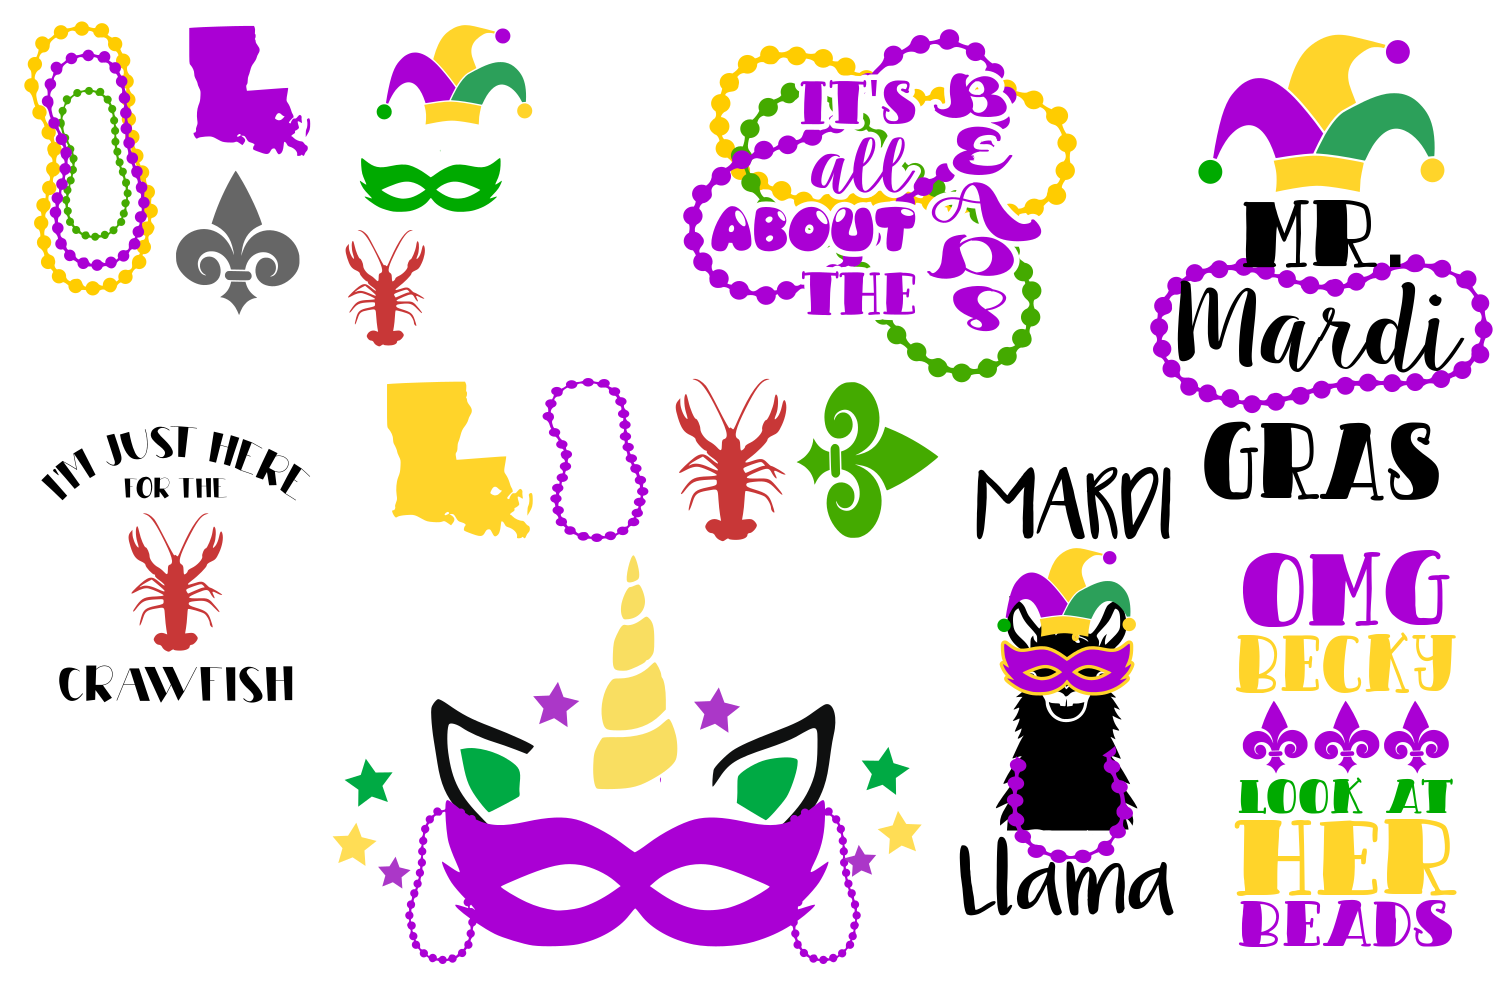 Download Free Mardo Gras Bundle Graphic By Auntie Inappropriate Designs for Cricut Explore, Silhouette and other cutting machines.